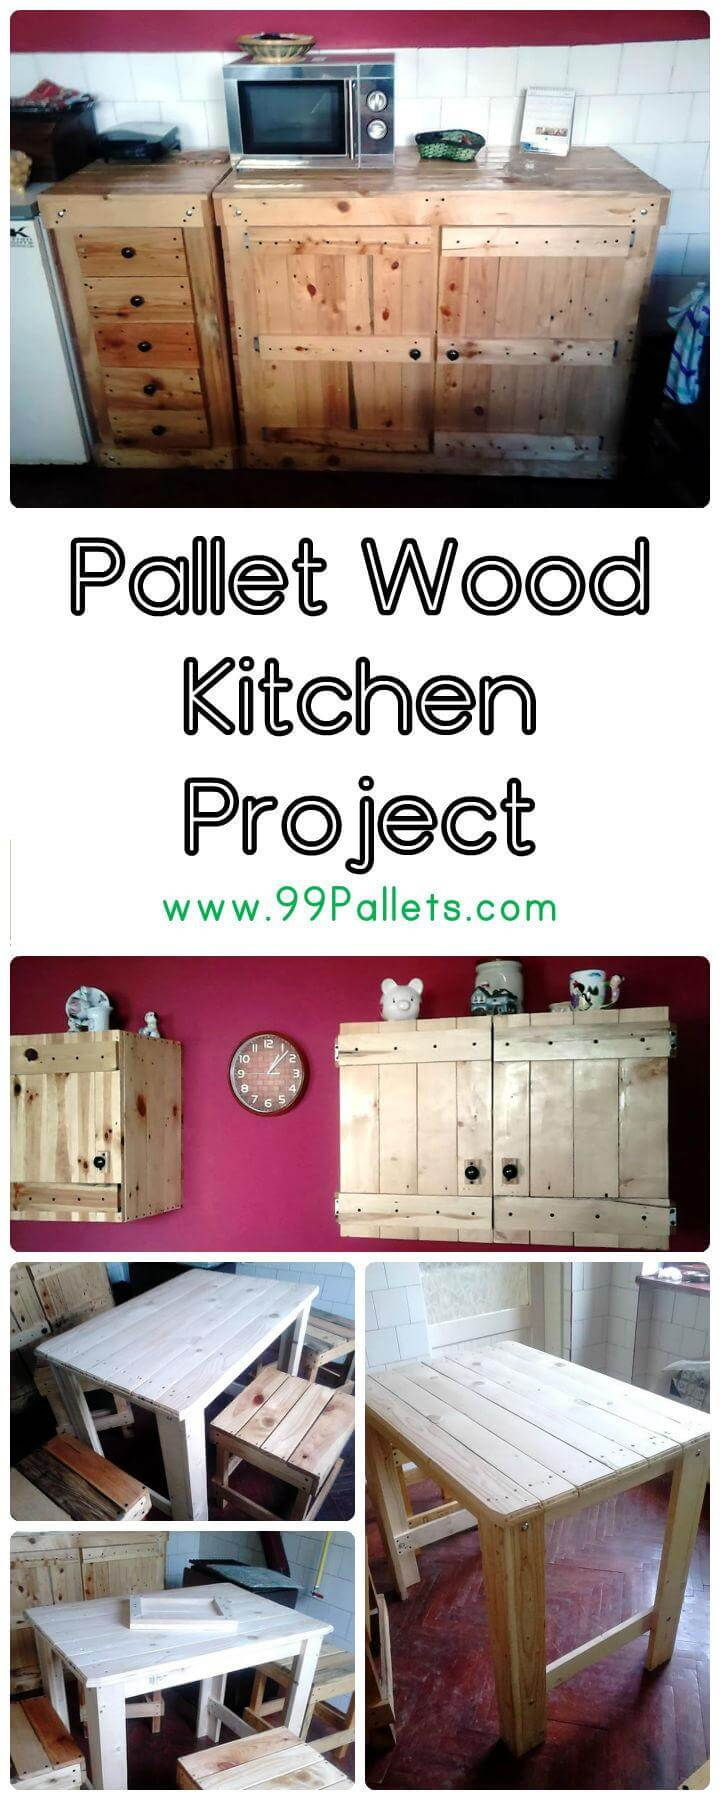 Wooden Kitchen Projects ~ Pallet wood kitchen project pallets